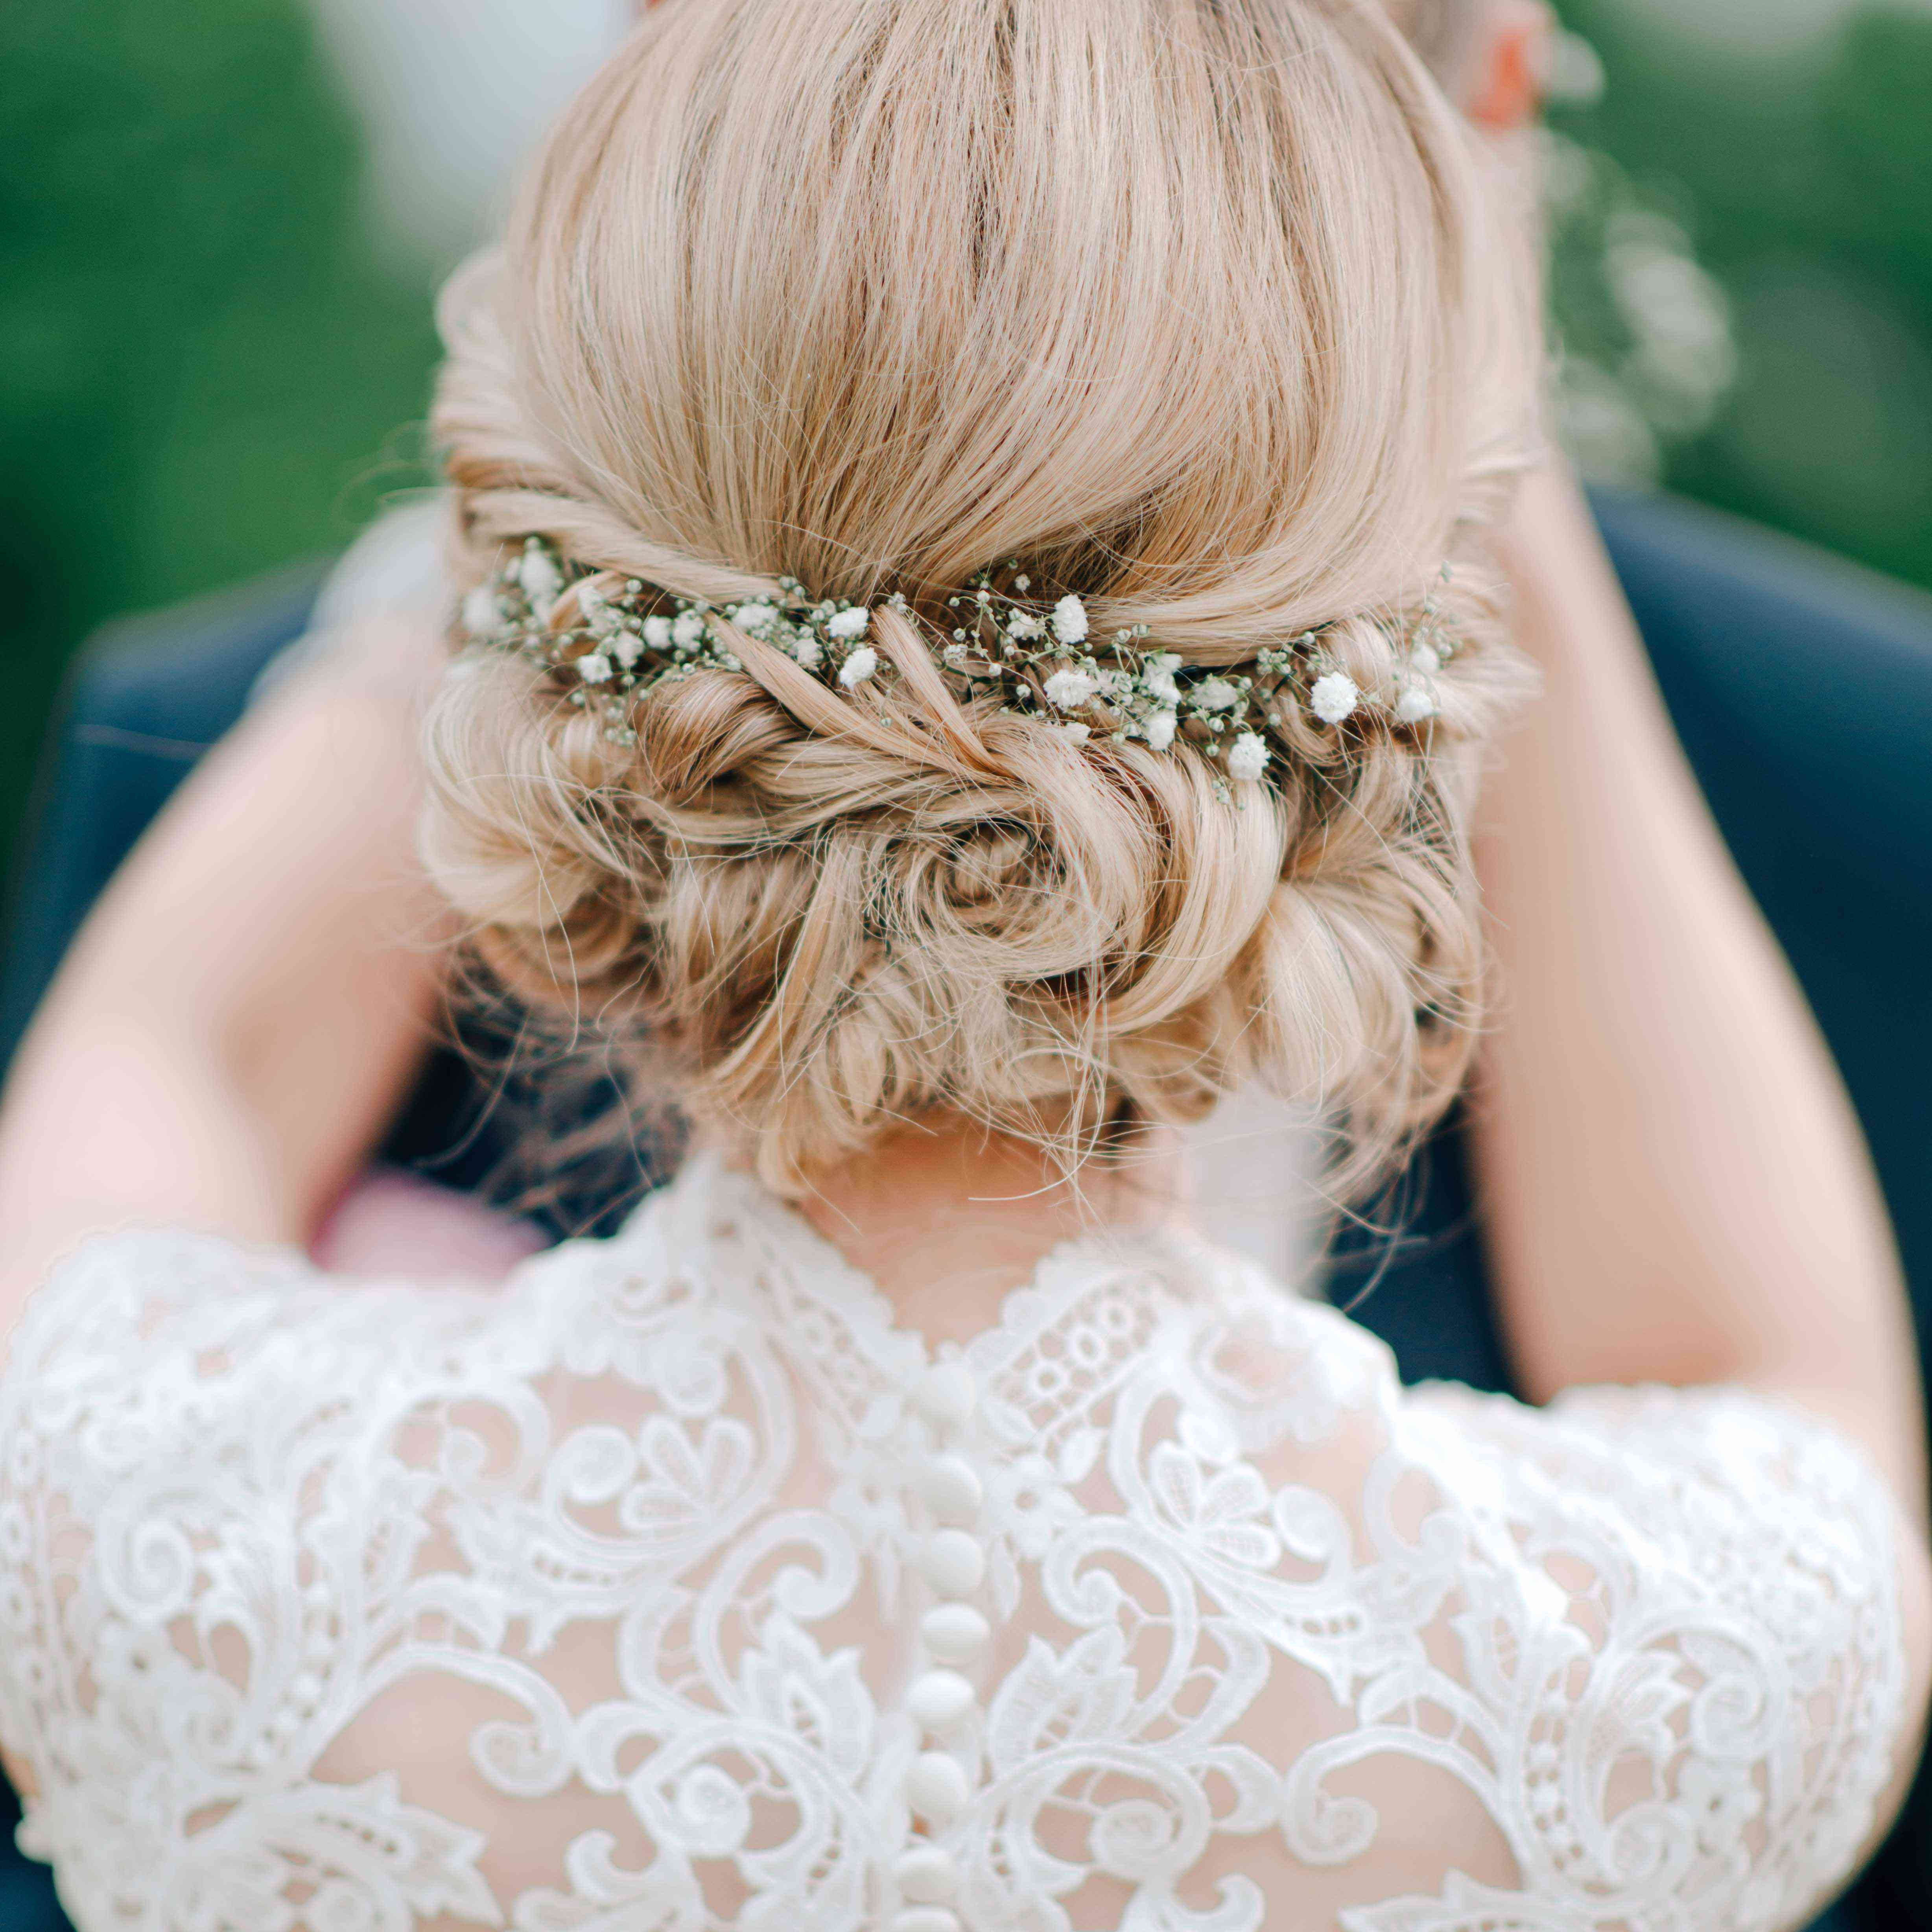 15 Ethereal Wedding Hairstyles Featuring Baby's Breath Throughout Recent Ethereal Updo Hairstyles With Headband (View 11 of 20)